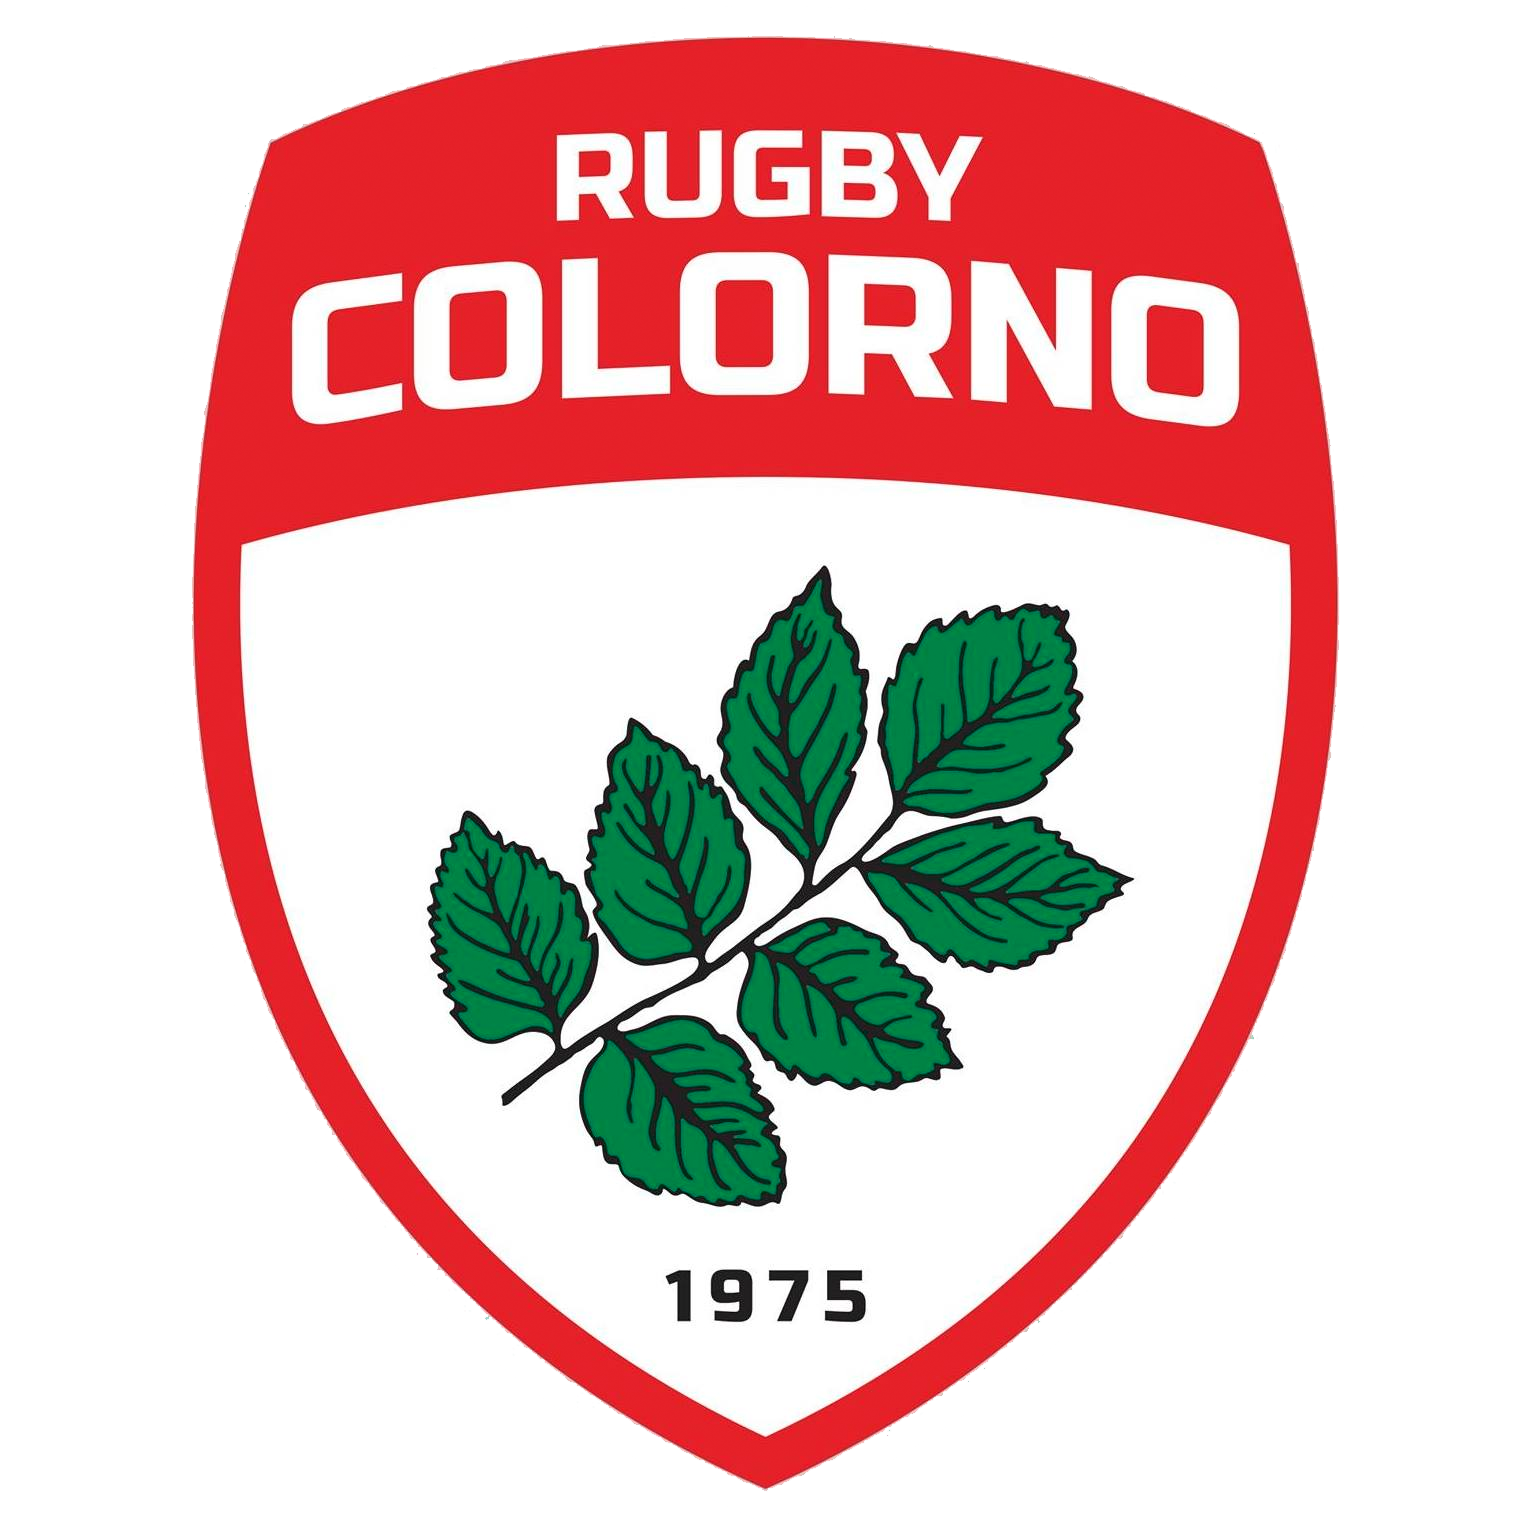 Rugby Colorno